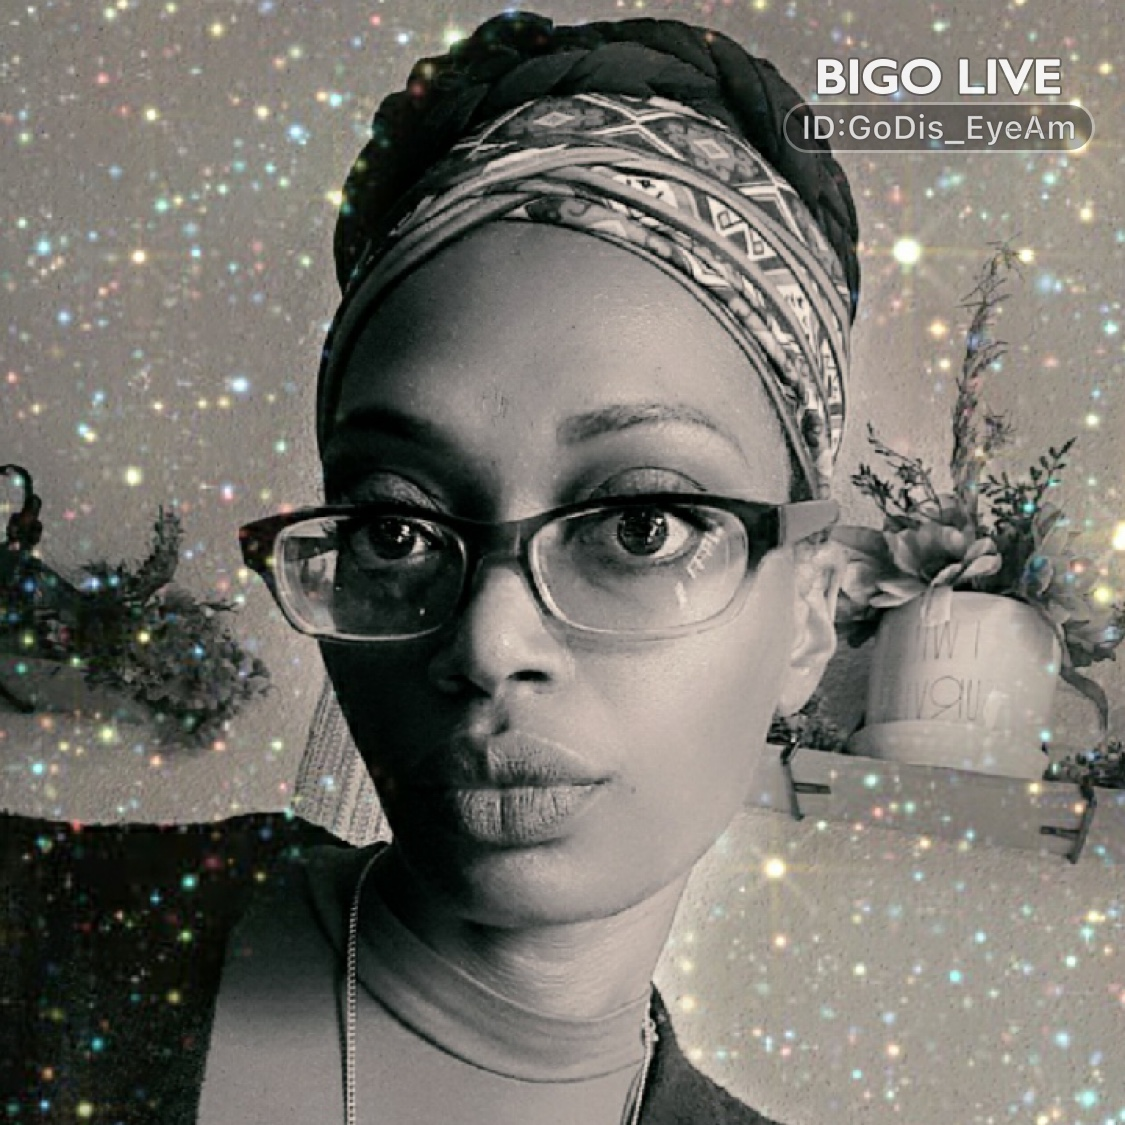 Come and see 💫GoDis EyeAm💫's LIVE in #BIGOLIVE: #music #goodvibes